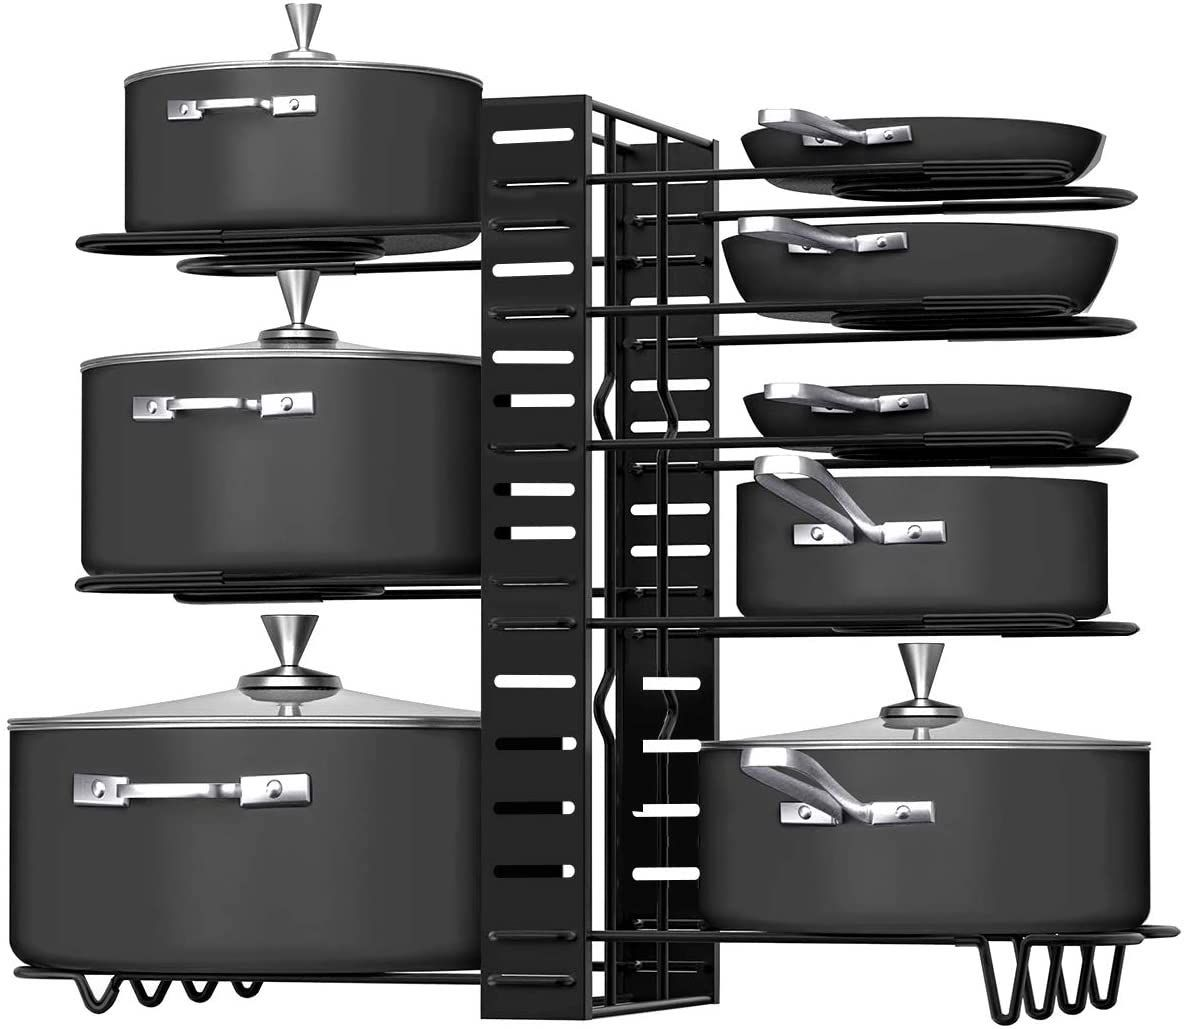 G-TING 8-Tier Pots and Pans Organizer